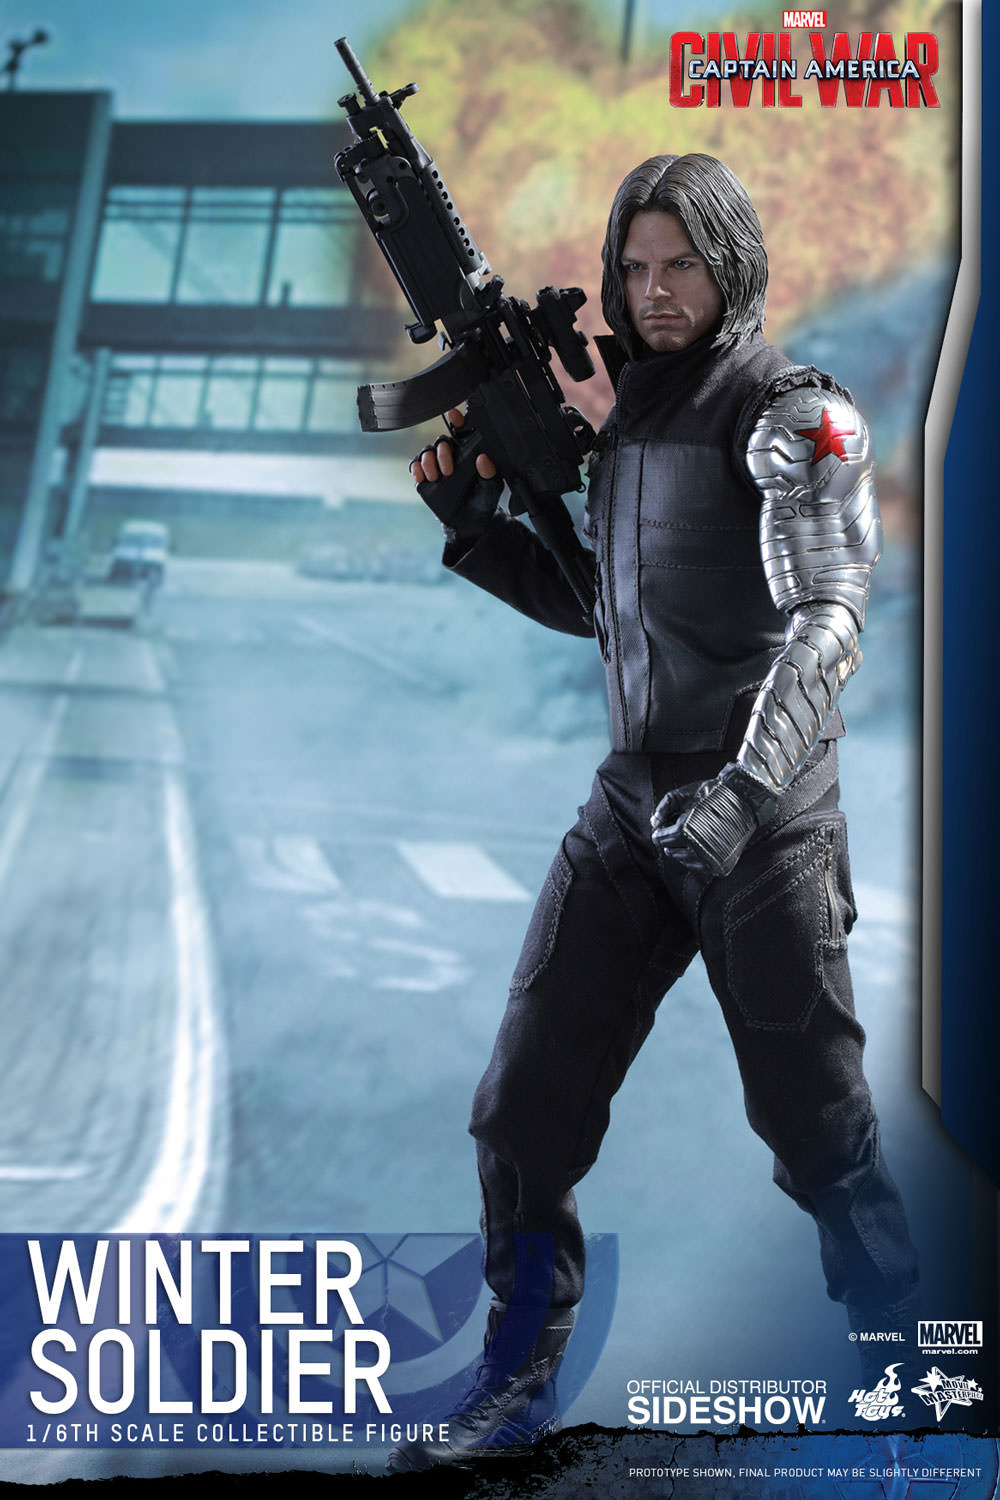 marvel-captain-america-civil-war-winter-soldier-sixth-scale-hot-toys-902656-01.jpg